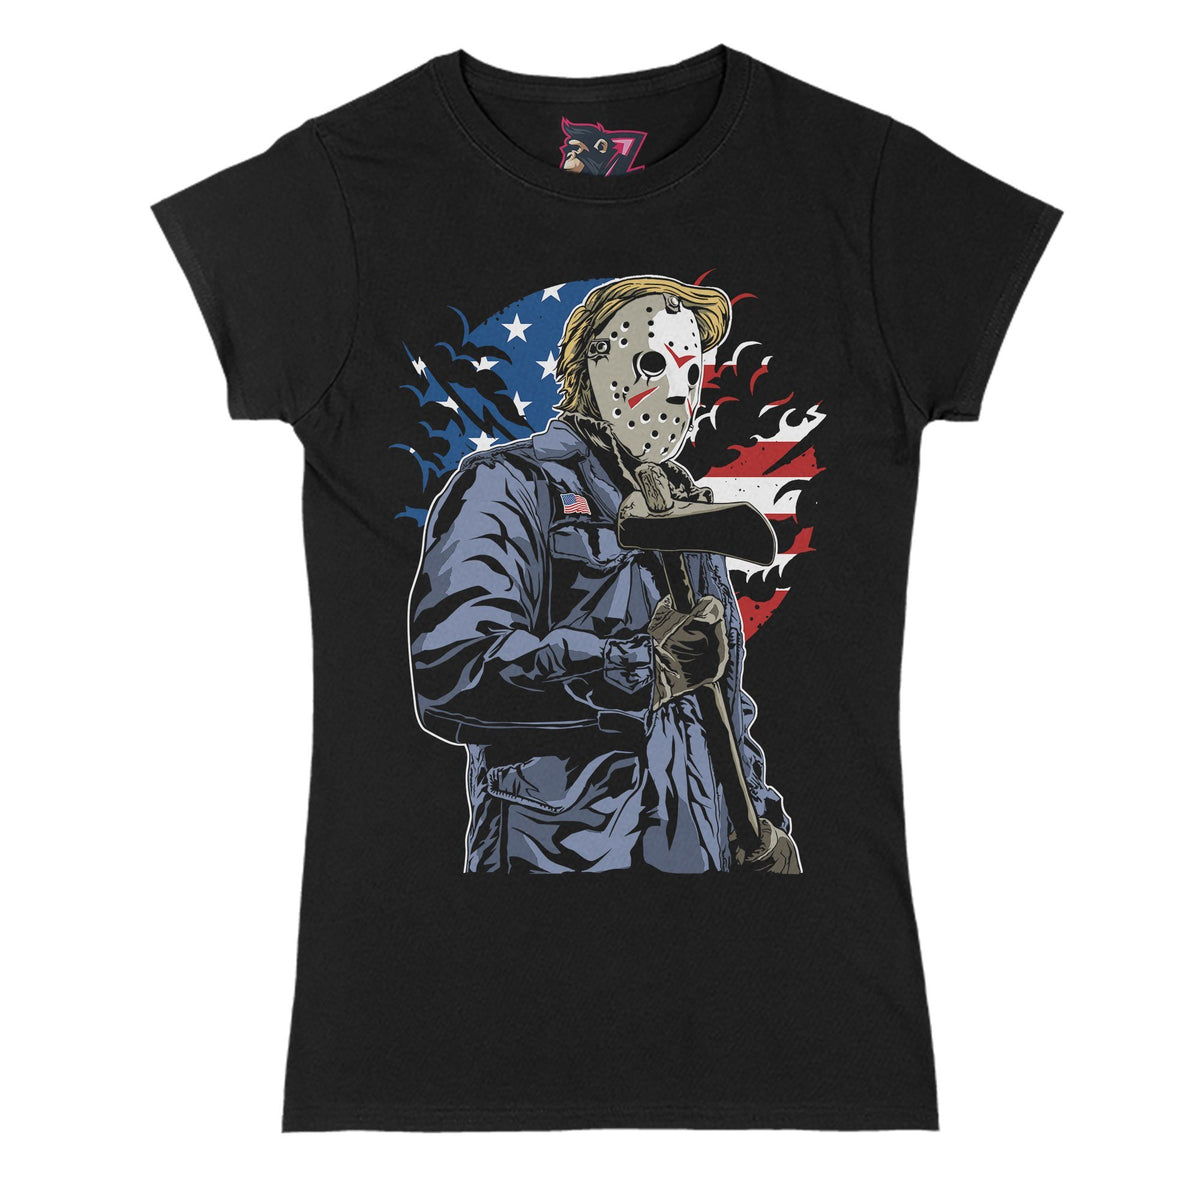 American Killer Primate Novelty Women's T-Shirt Adults: S